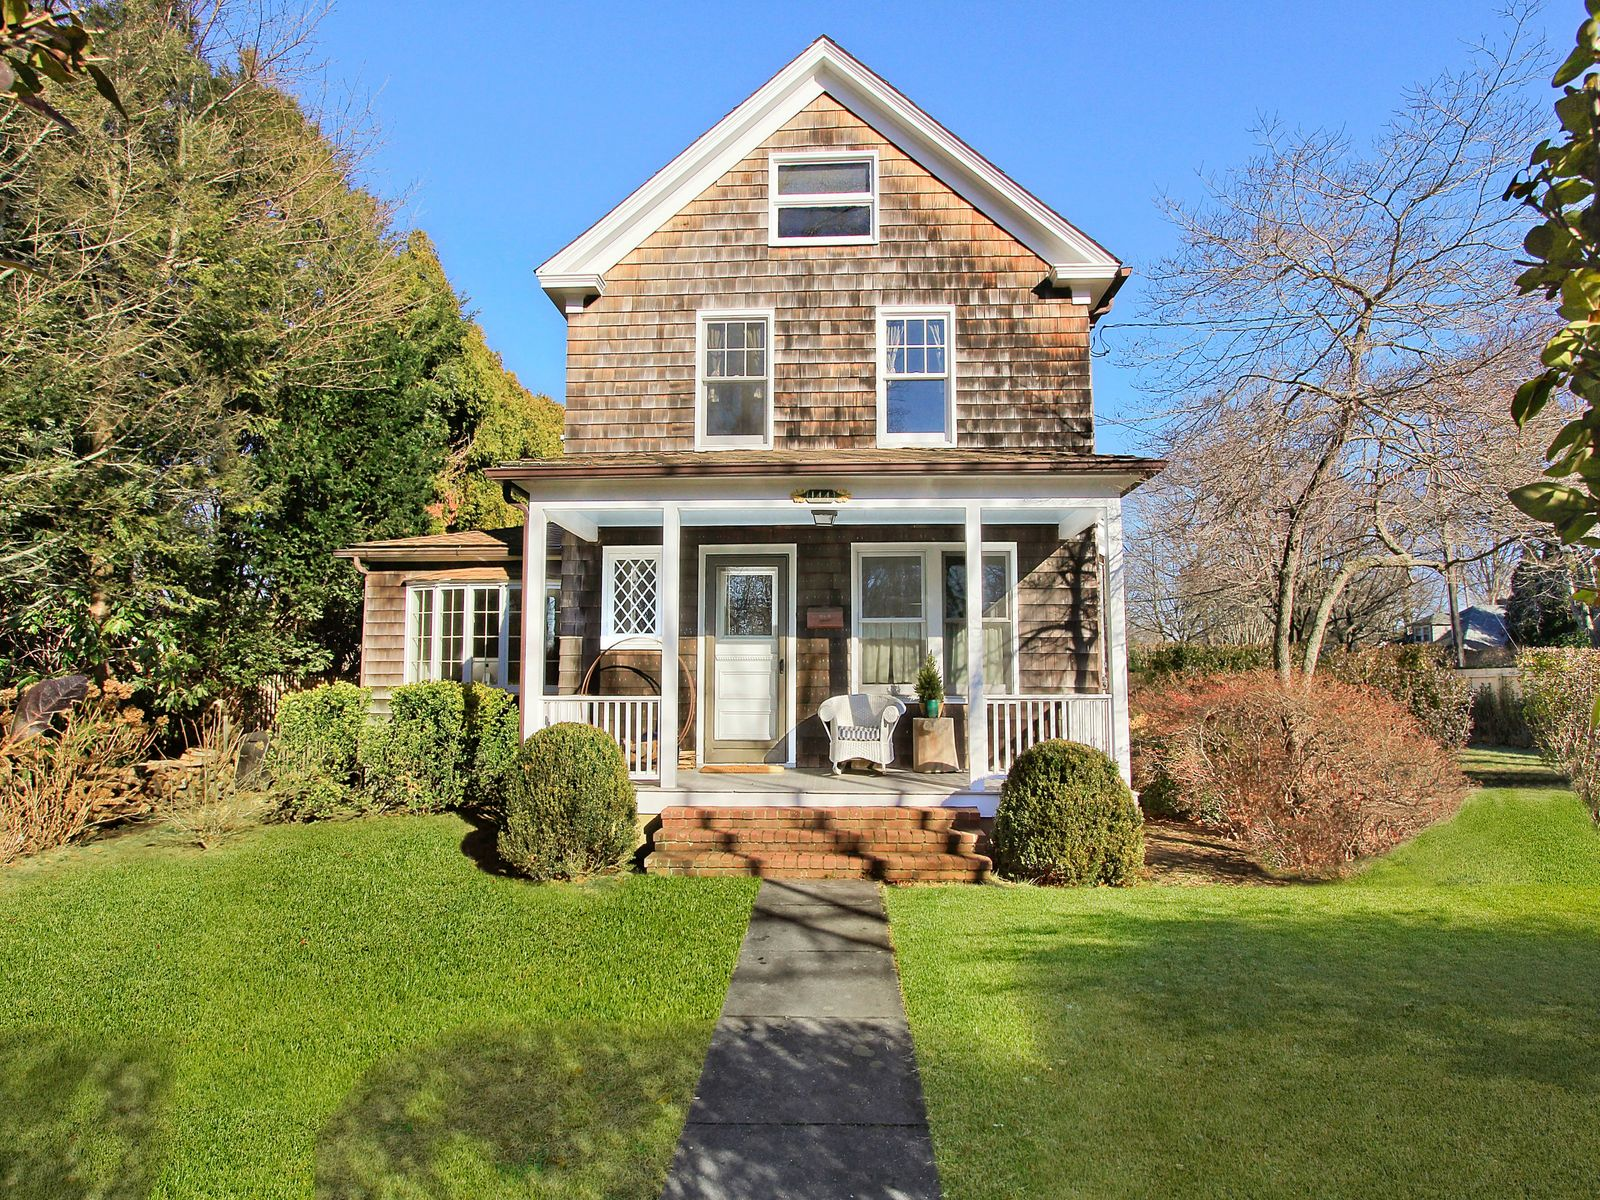 East Hampton Village Cottage, East Hampton NY Single Family Home - Hamptons Real Estate